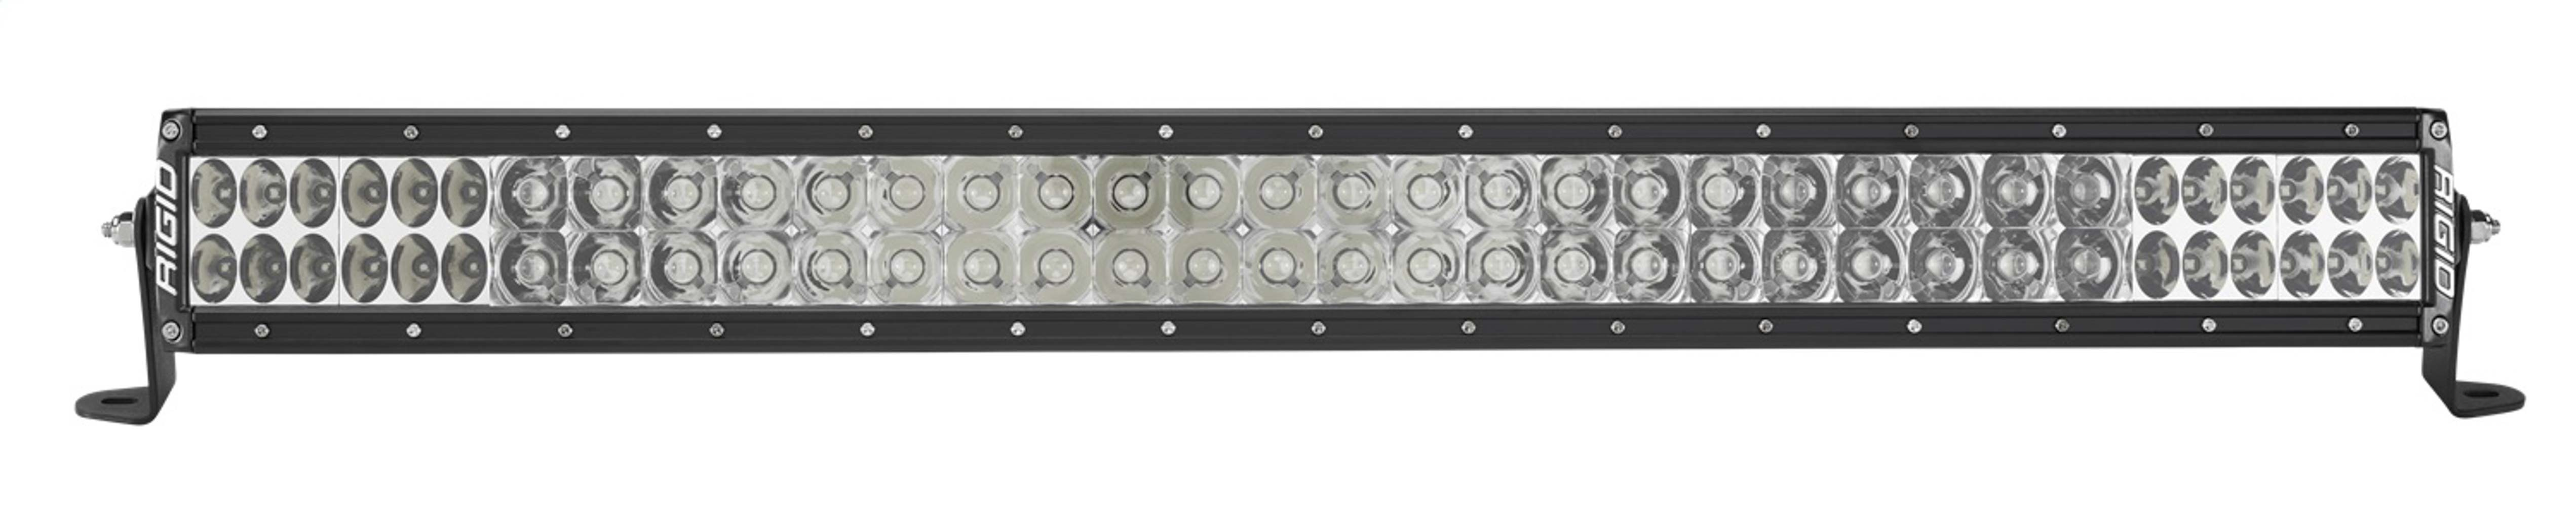 RIGID INDUSTRIES LED Light Each 30 in E2 Series Driving/Hyperspot P/N - 132313